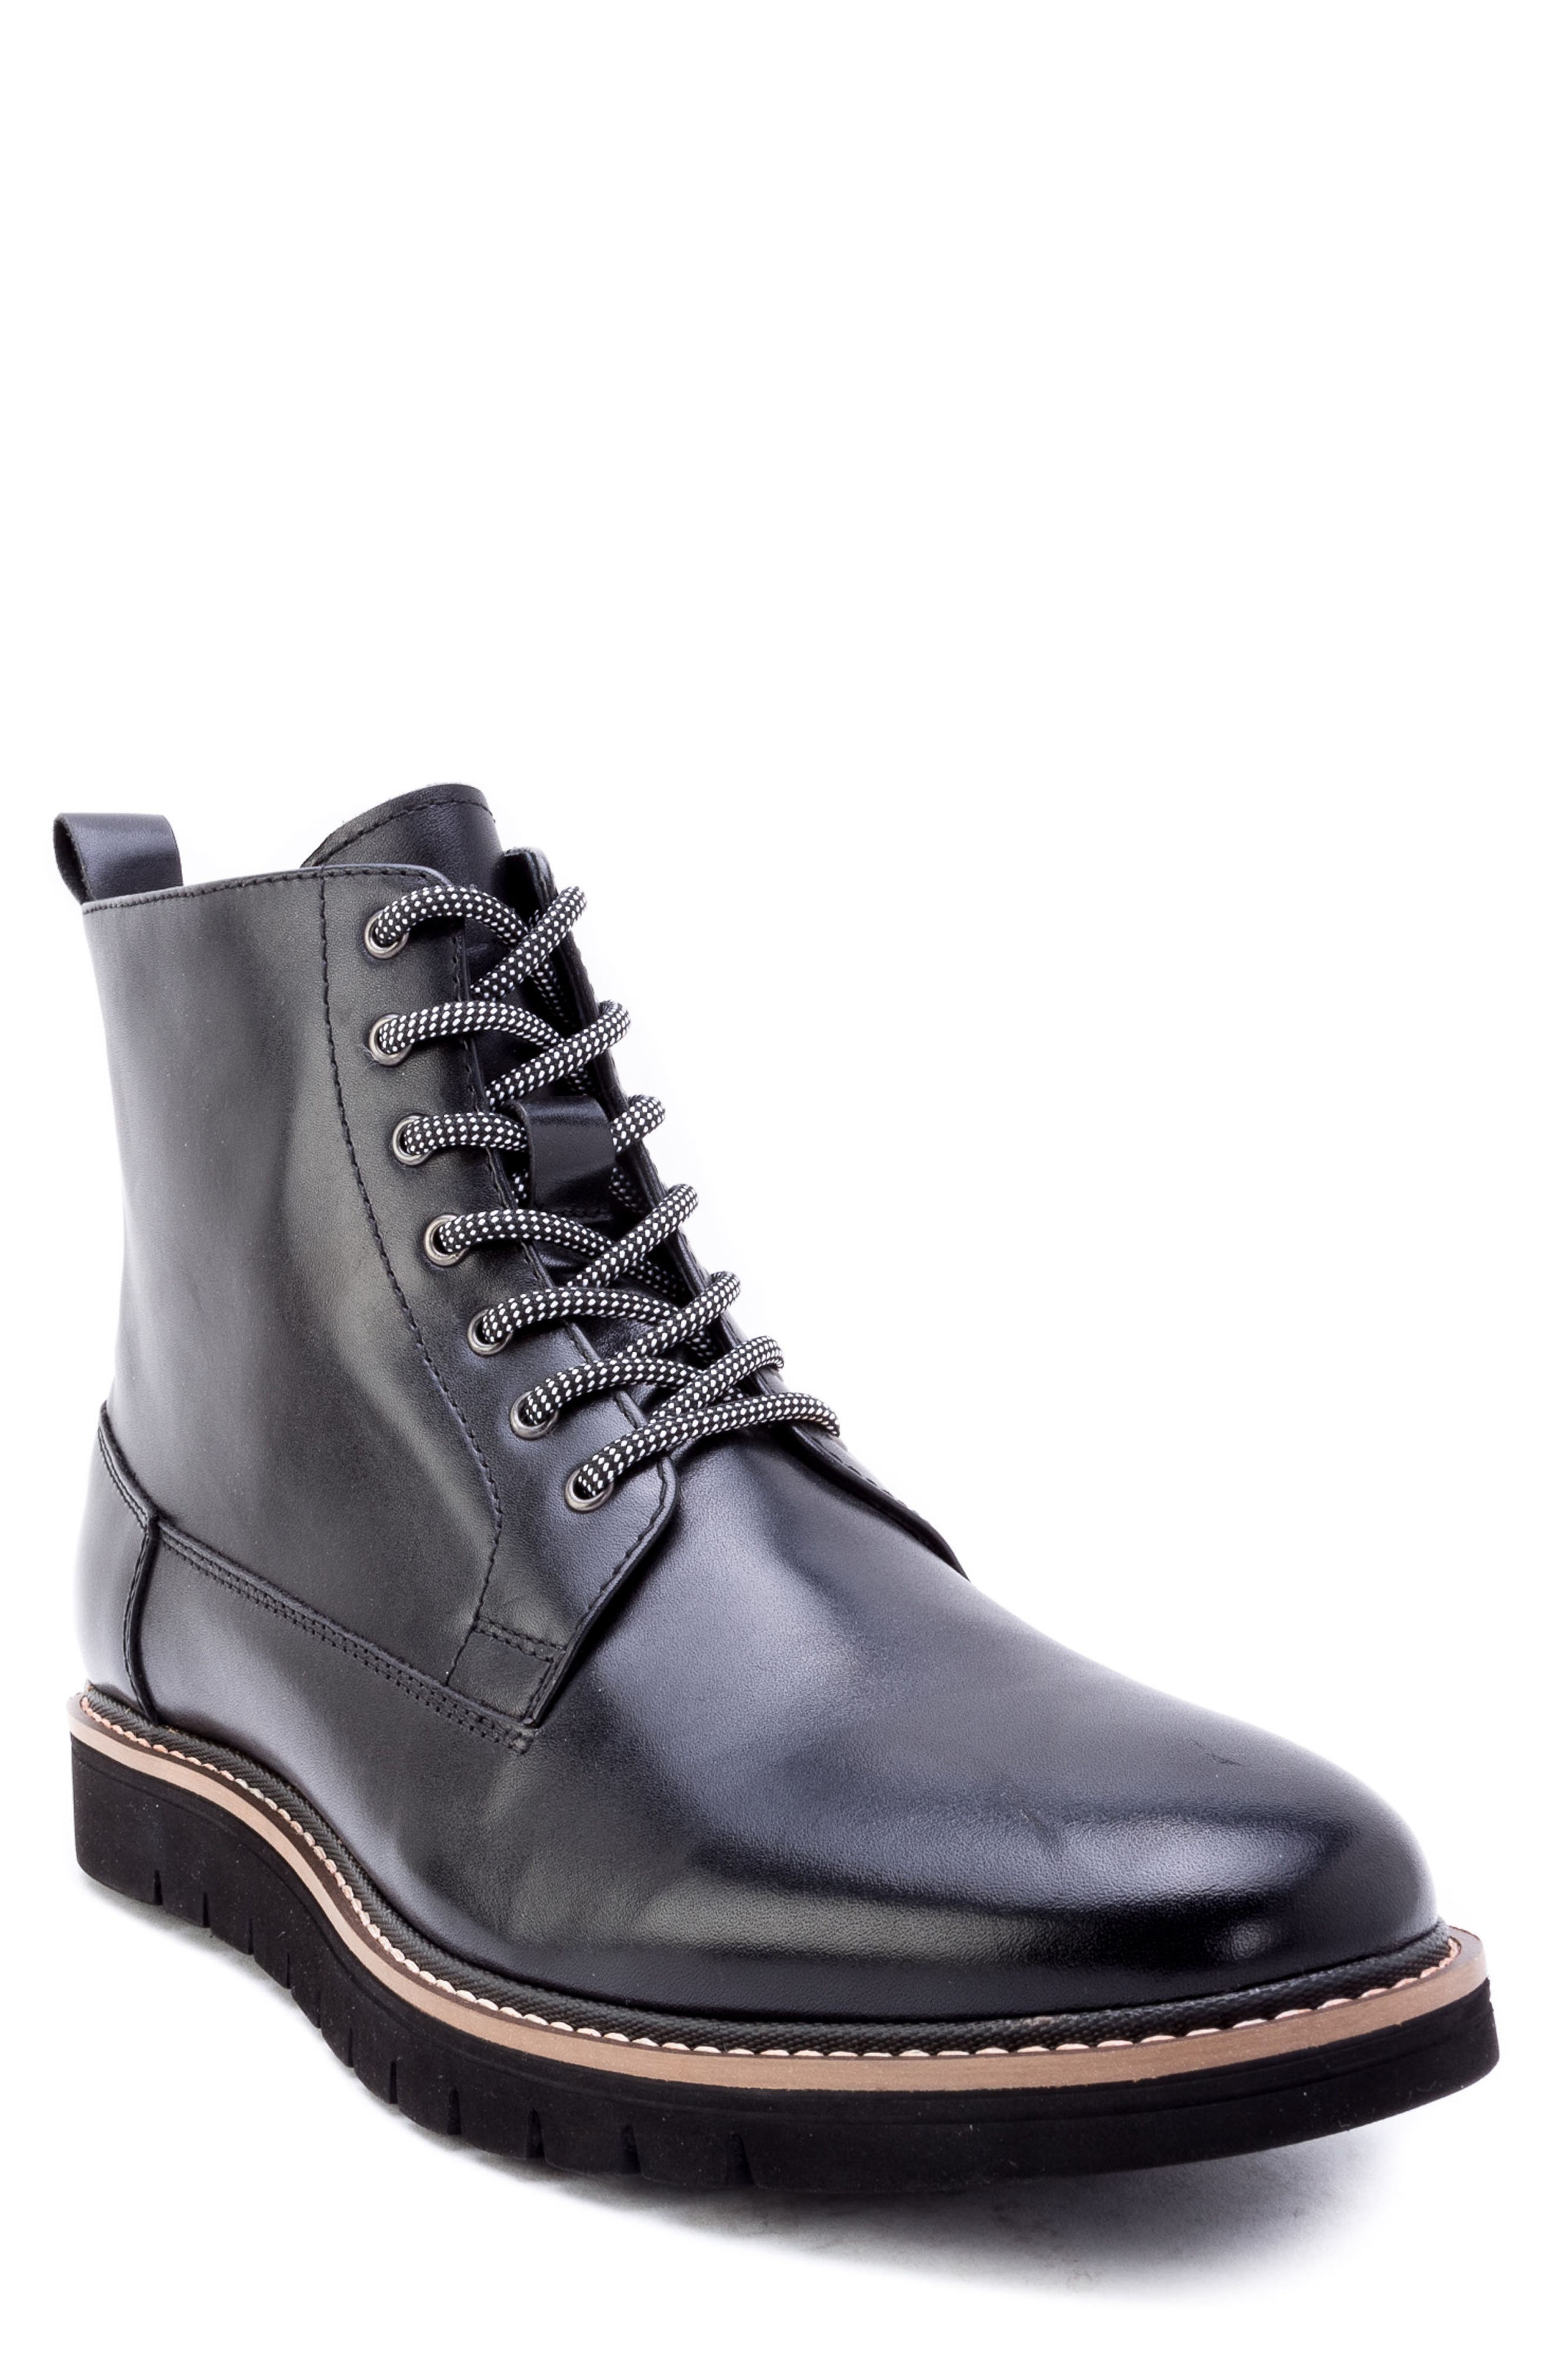 LAIRESSE BOOT